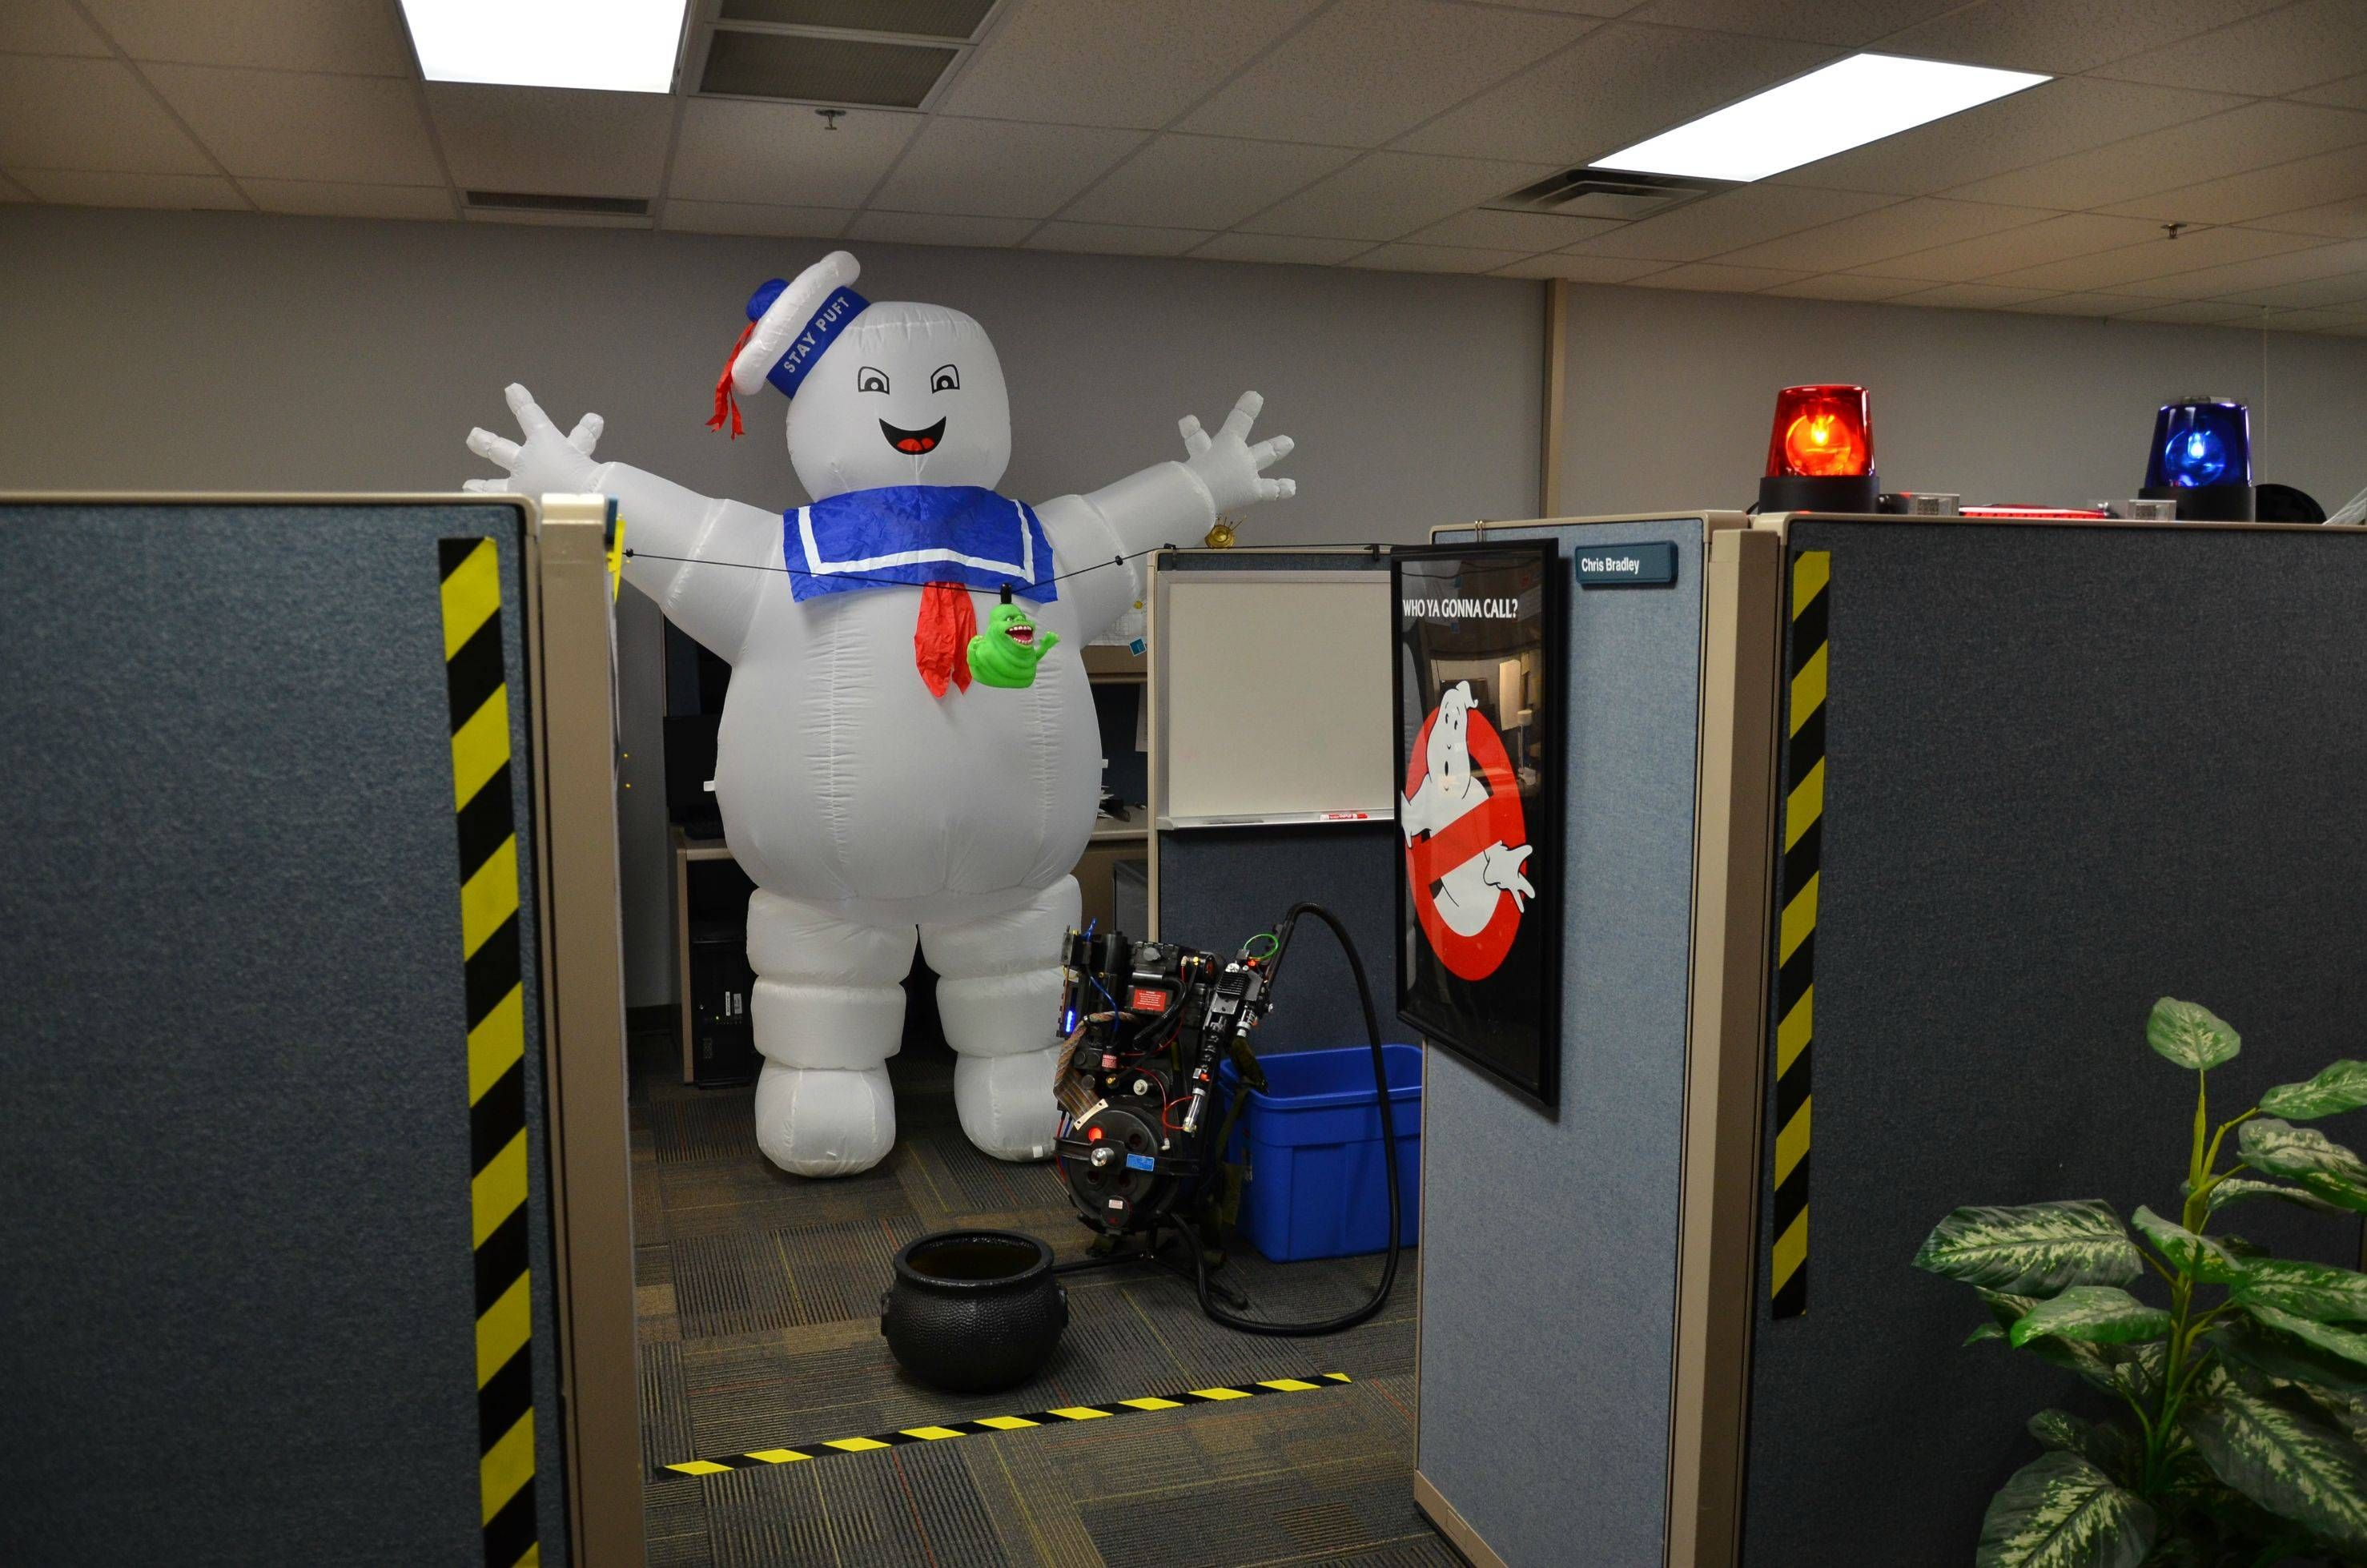 Cubicle Decoration Sample Office Halloween Decorations Halloween Cubicle Halloween Decorations